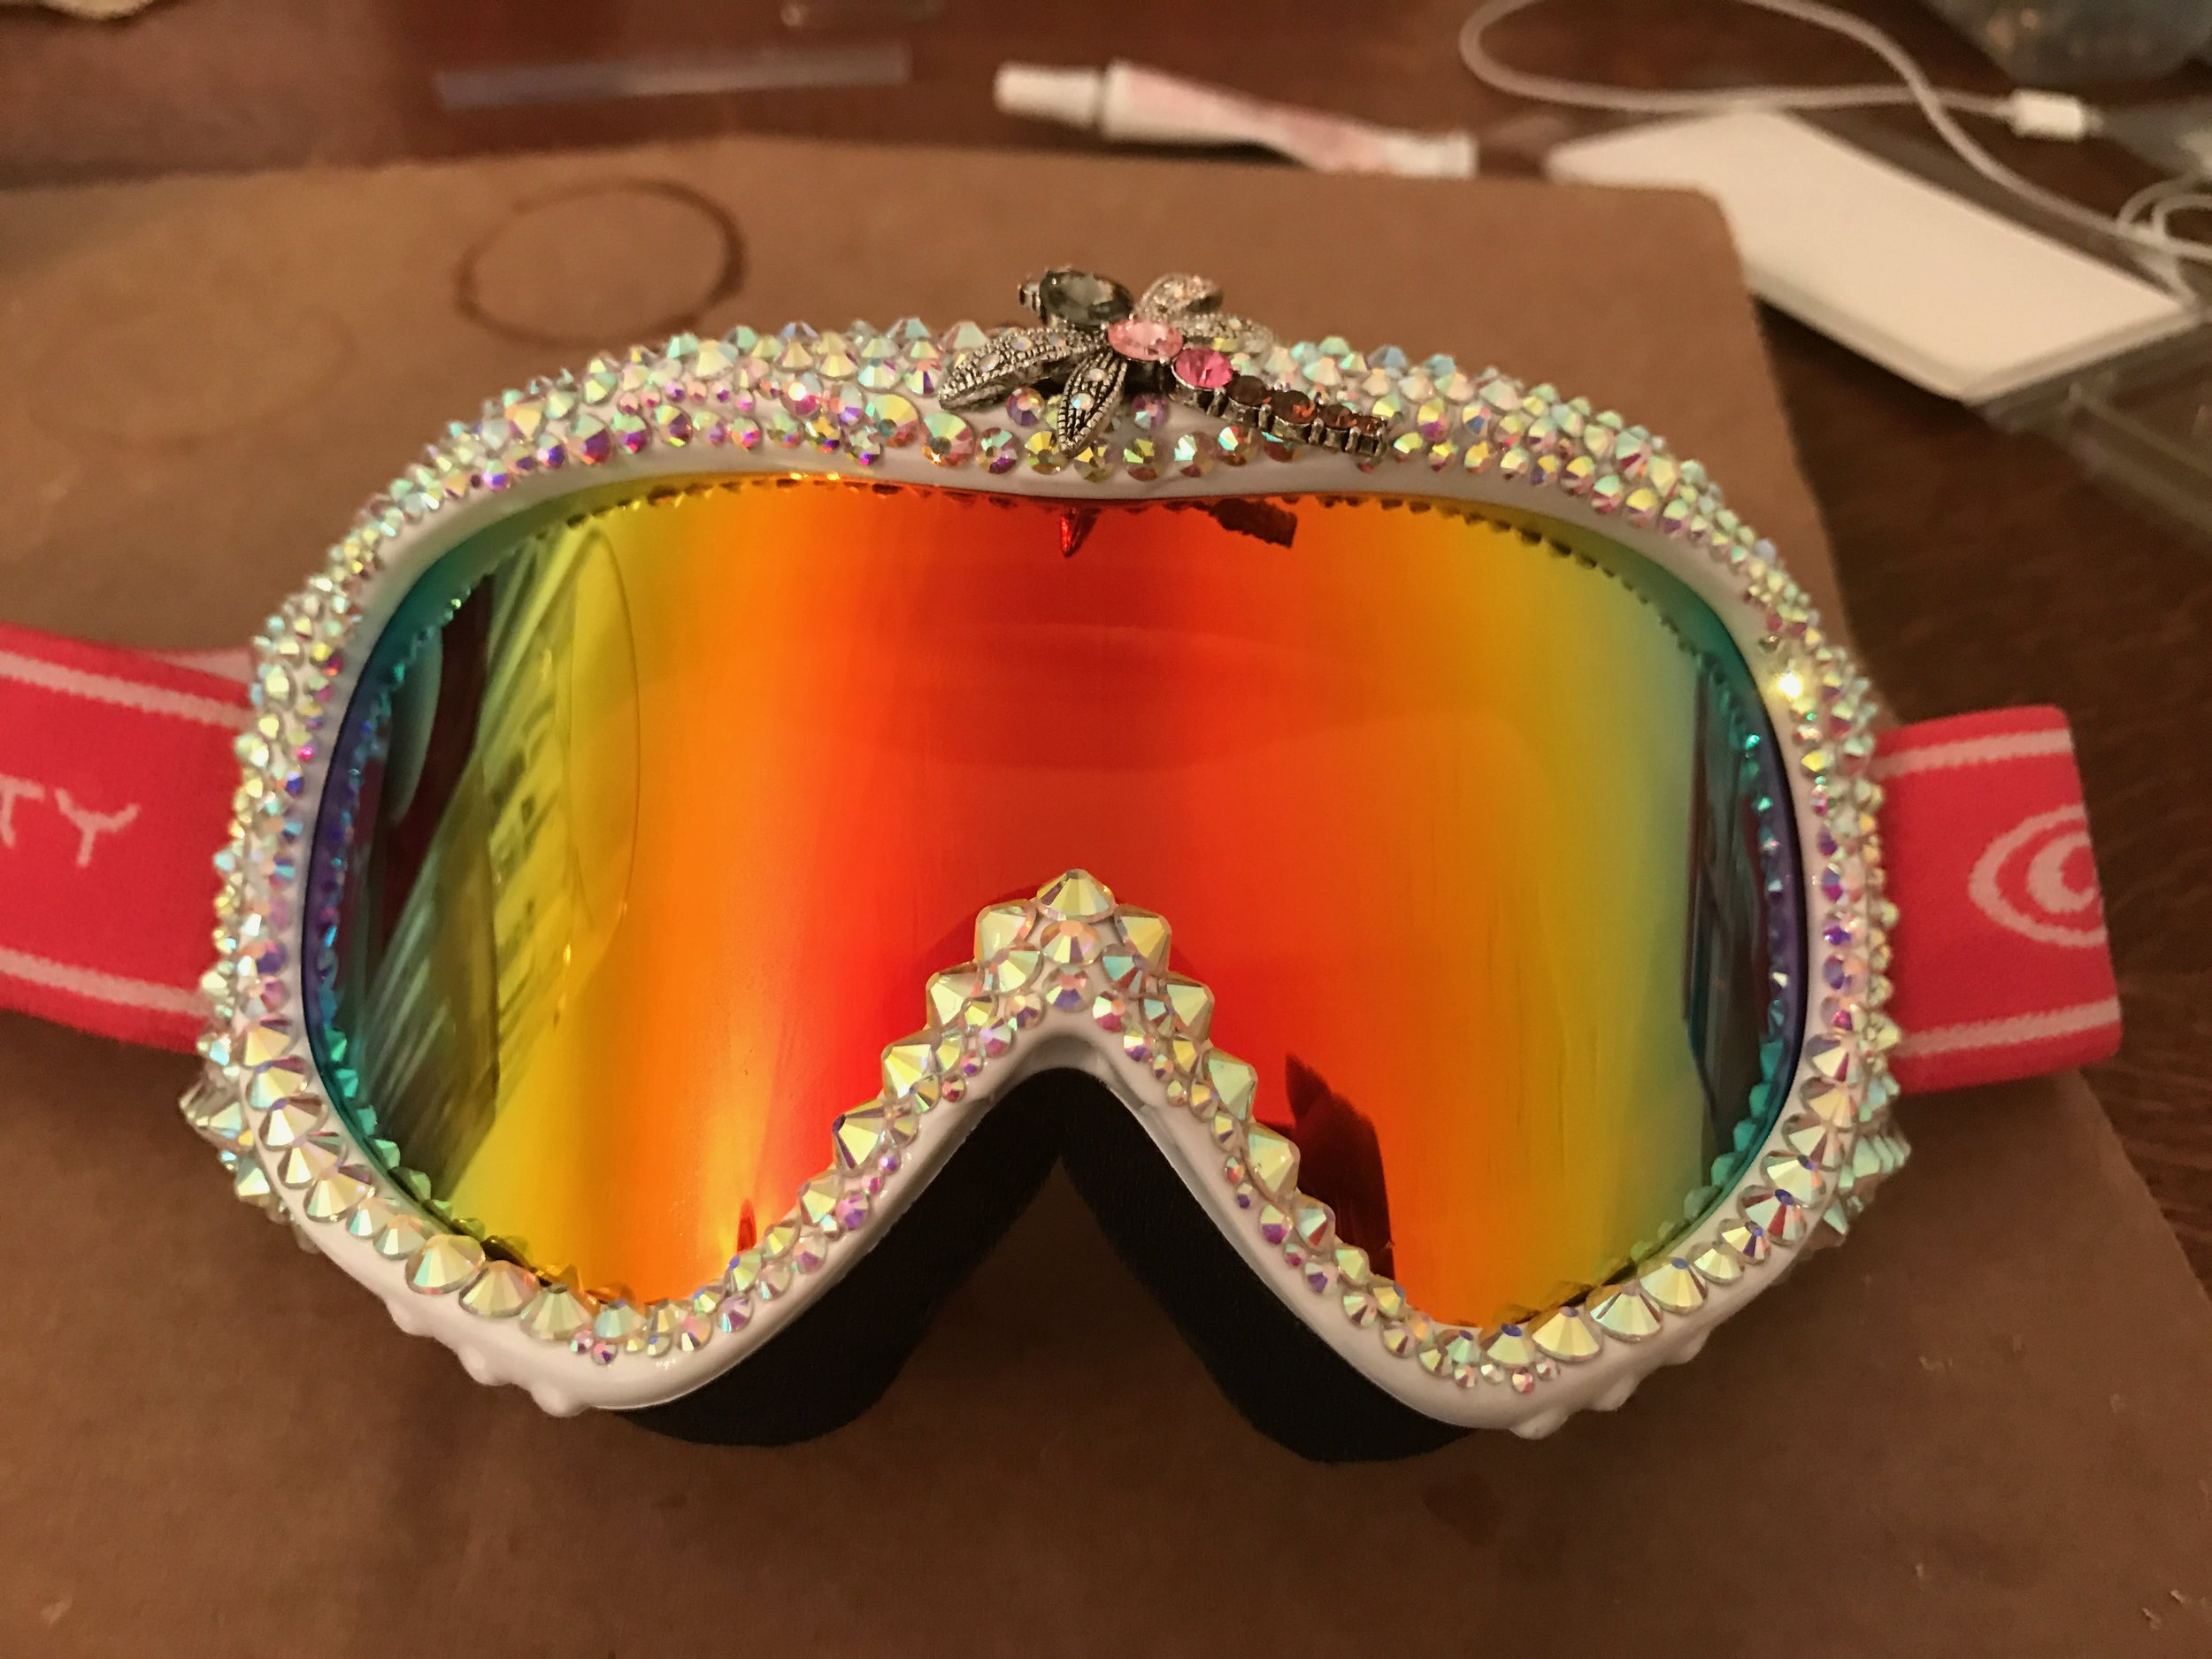 7252a17bcd Dusty DIY  How to Customize Your Goggles for The Burn — Dusty Depot